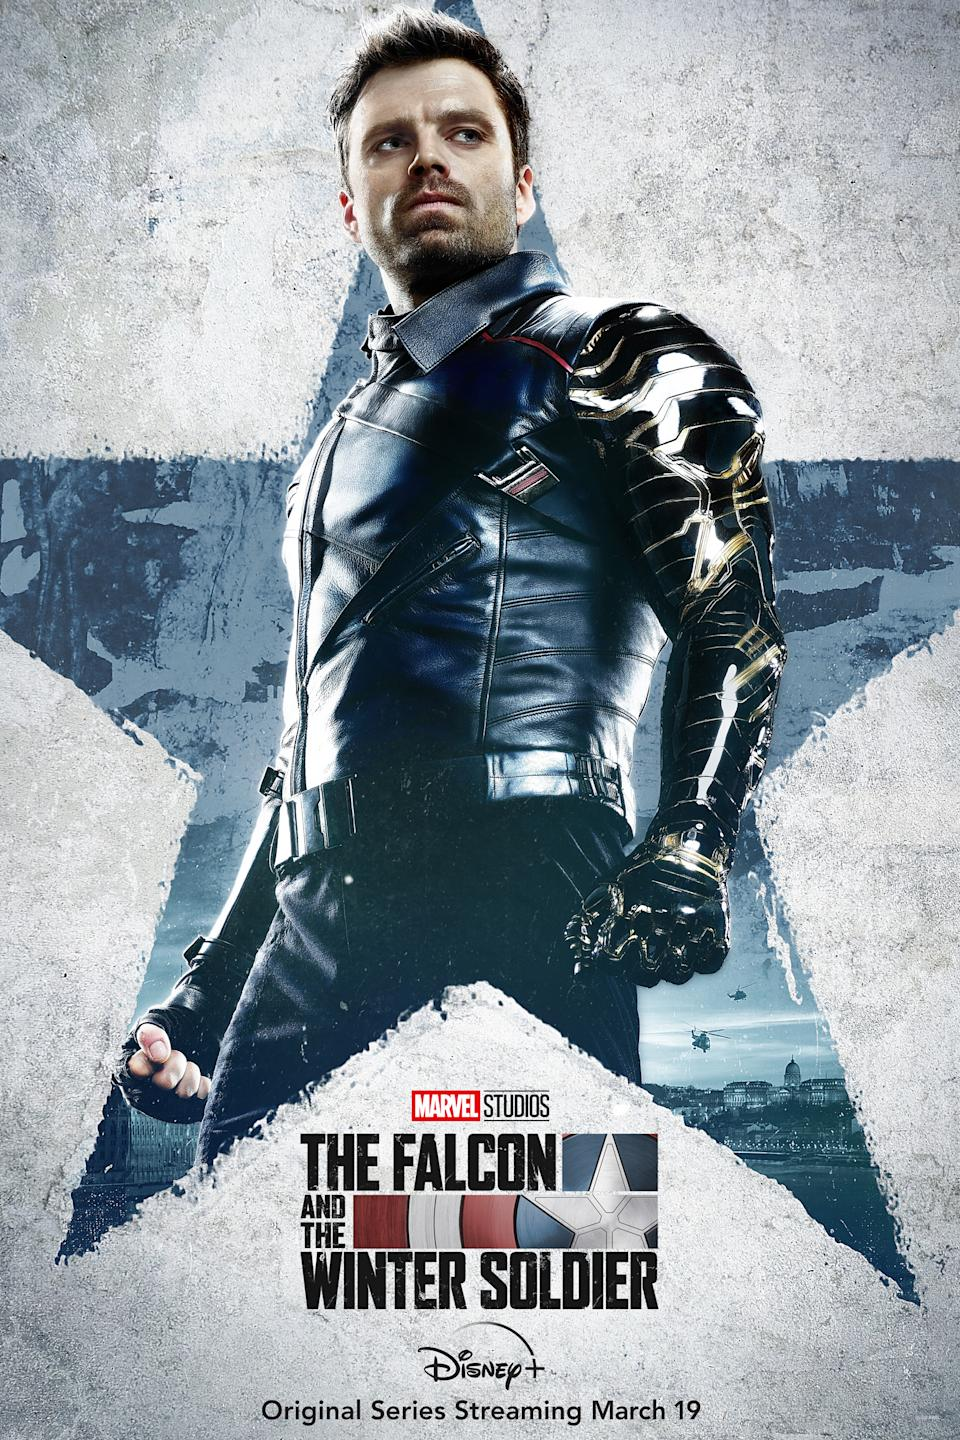 Sebastian Stan as Bucky Barnes aka The Winter Soldier in character posters for Marvel Studios' Disney+ series, The Falcon And The Winter Soldier.